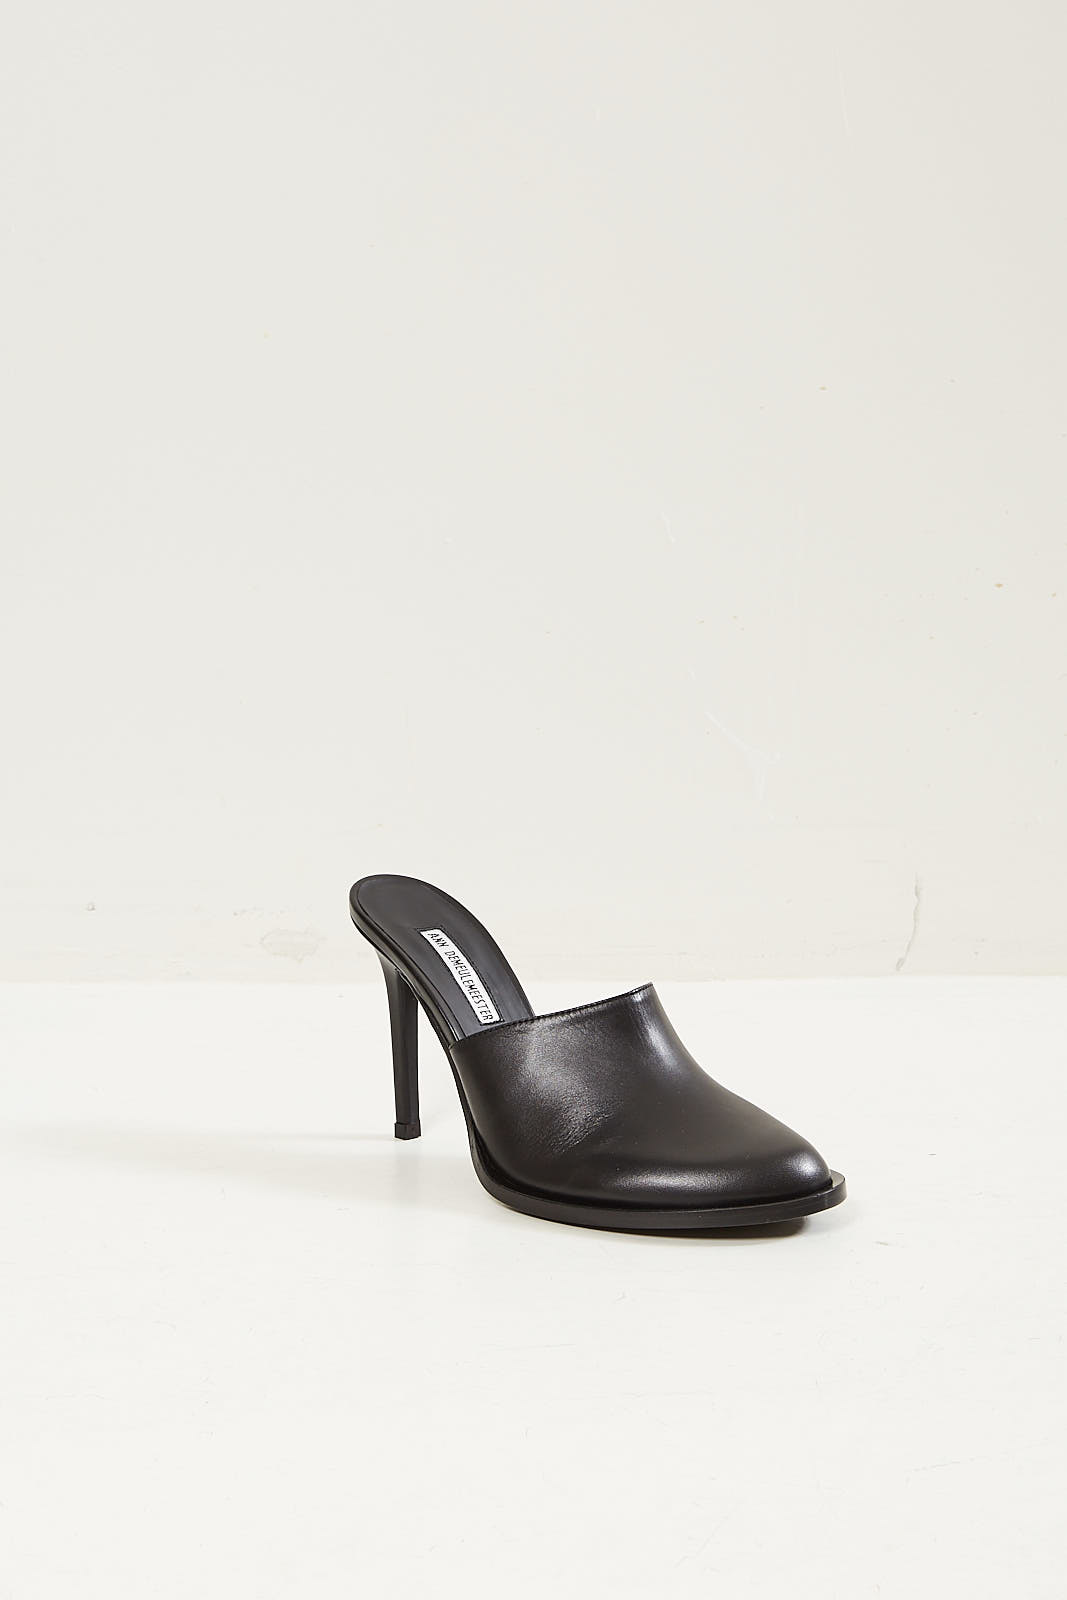 Ann Demeulemeester 100% leather shoes